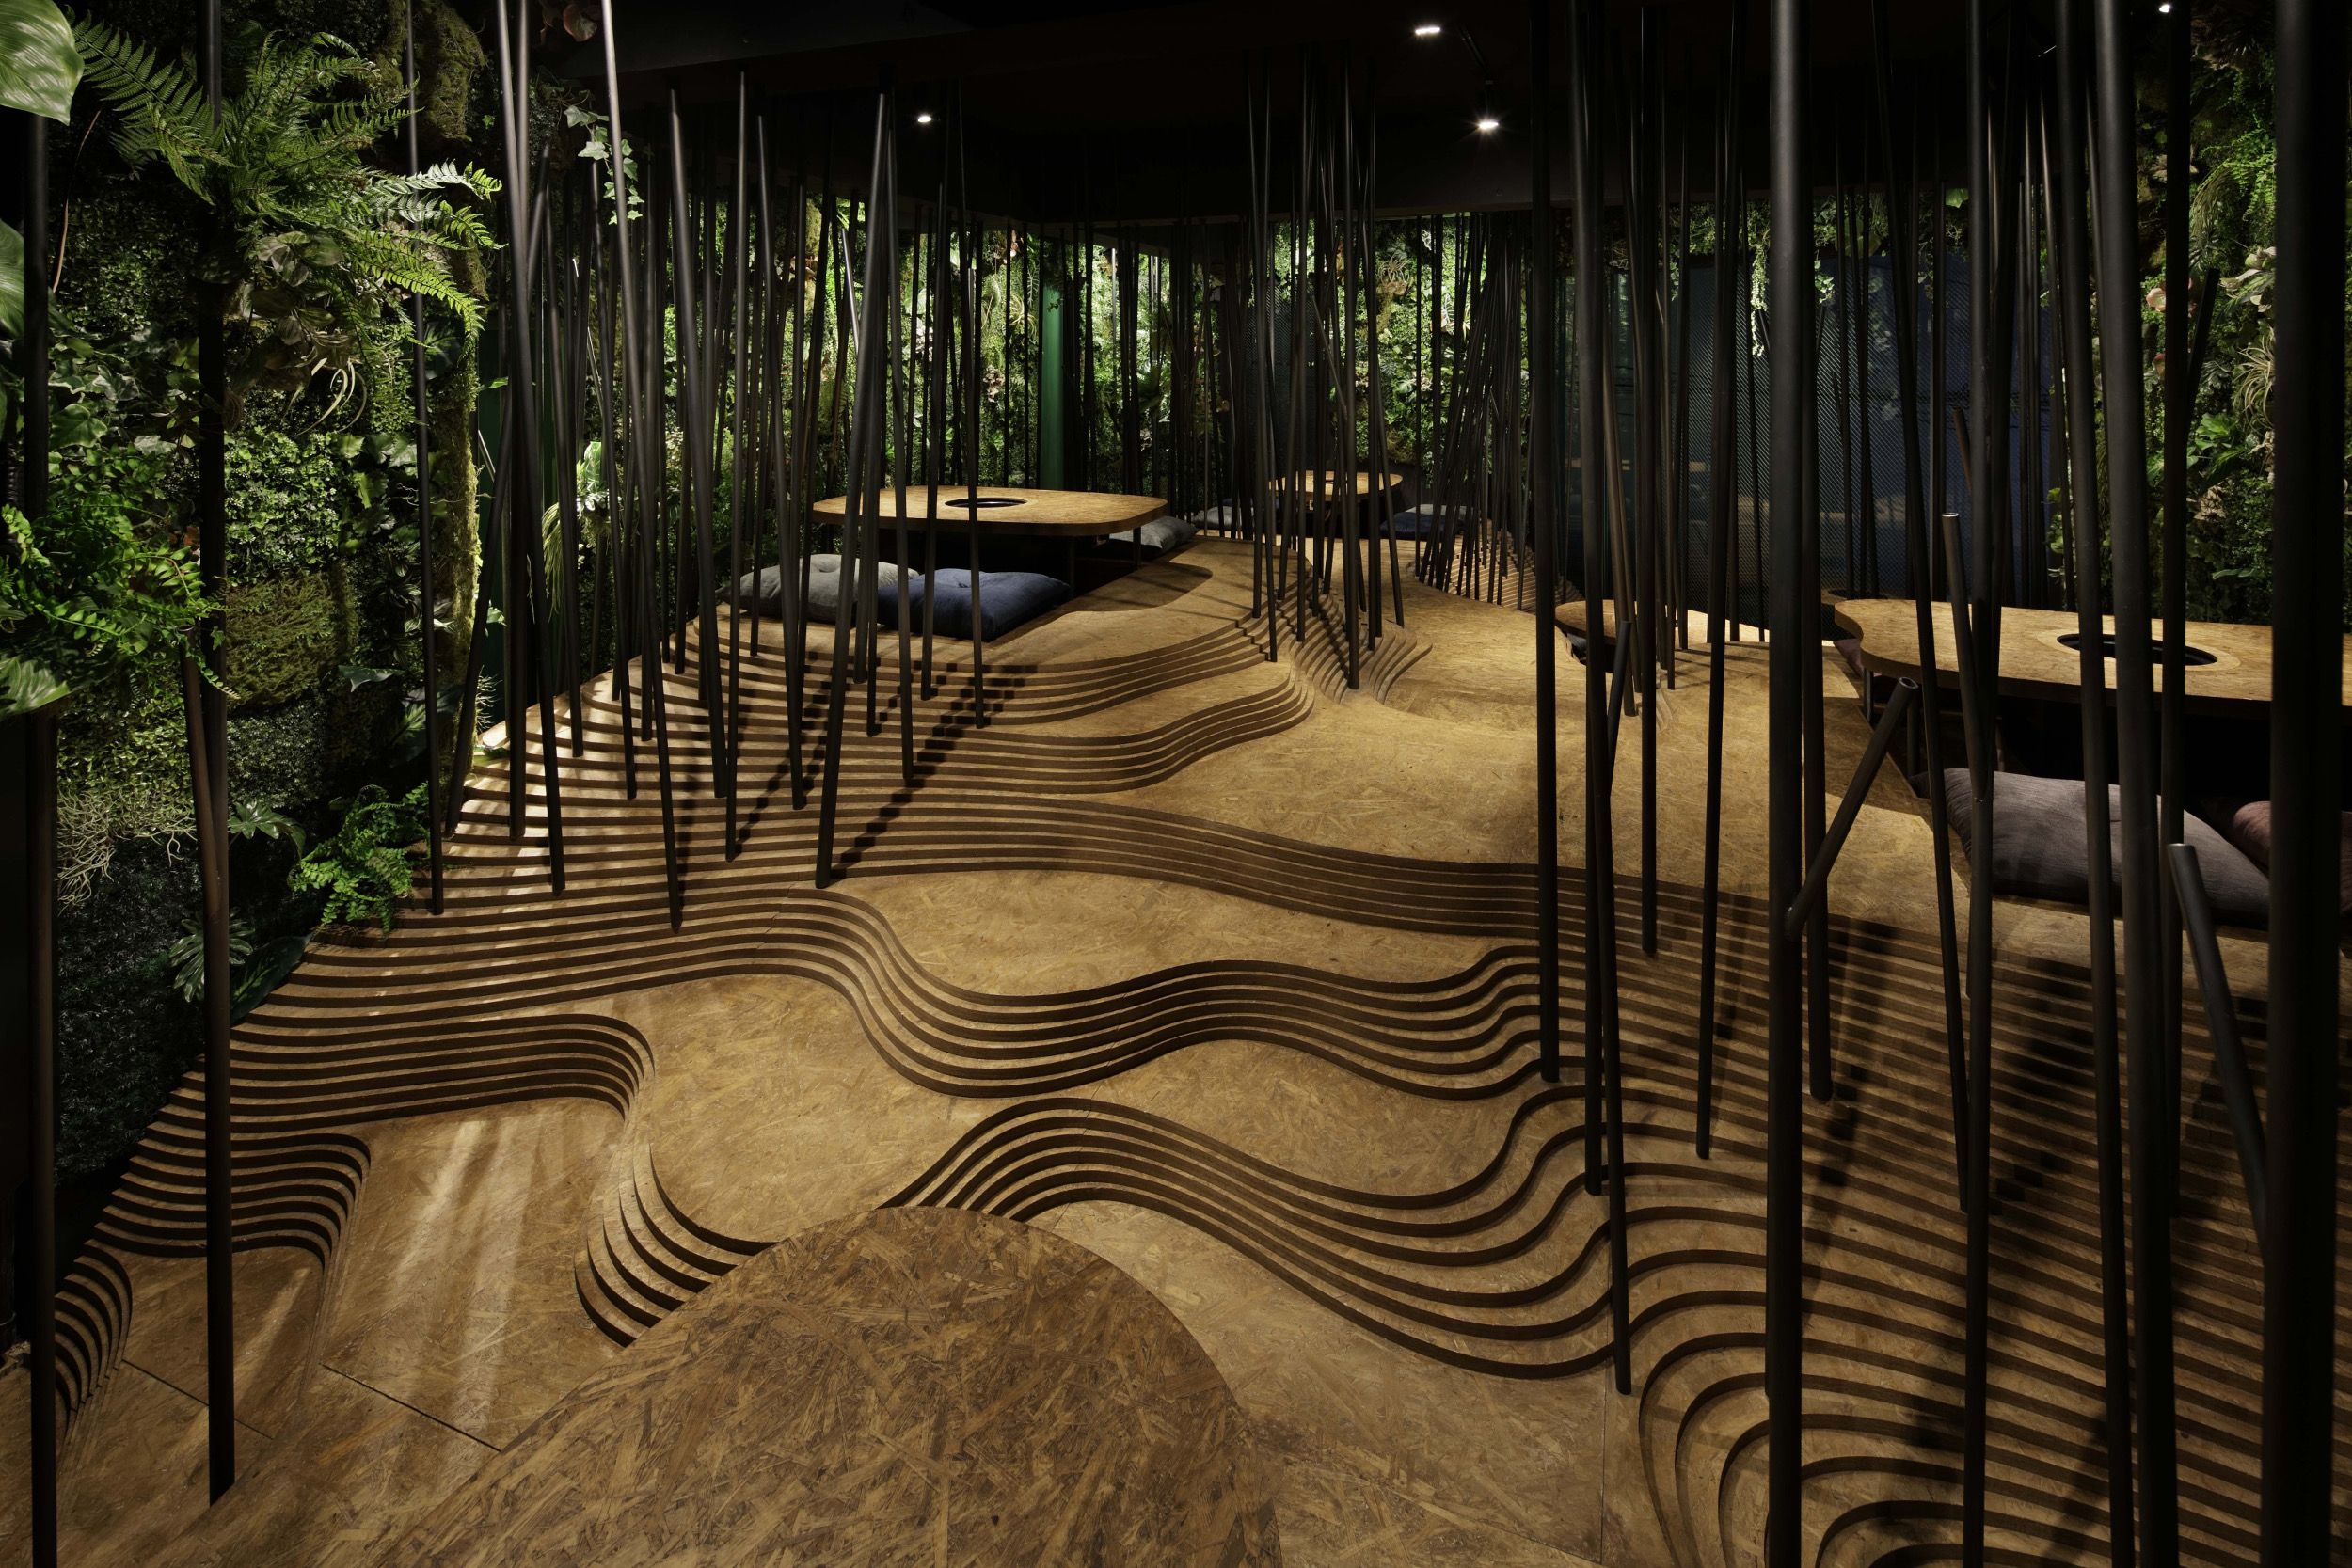 Inside the tokyo restaurant with its own indoor forest and cave